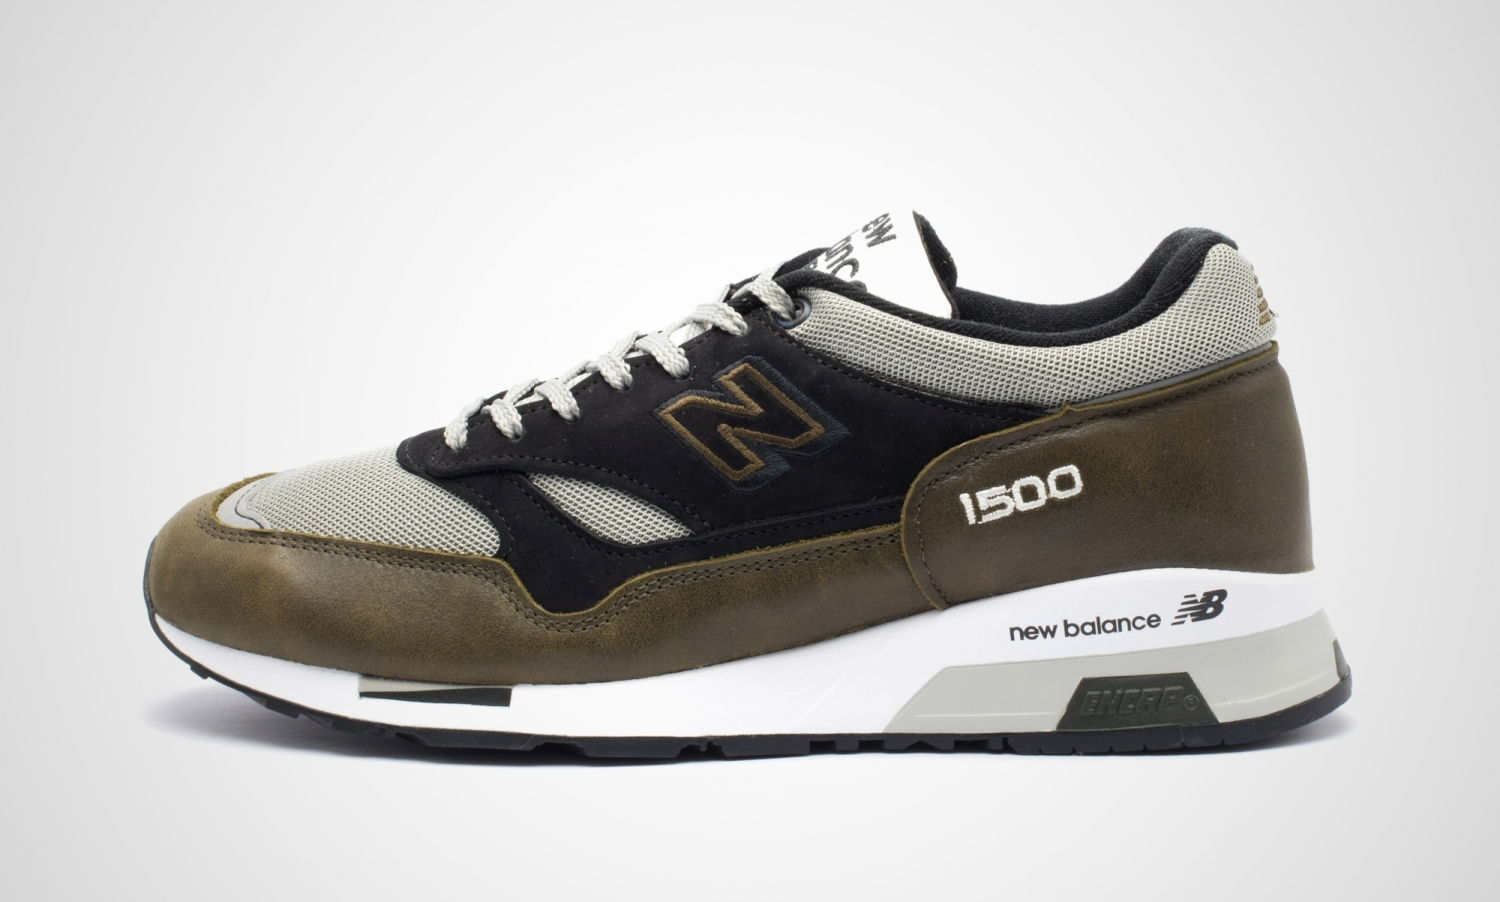 new balance 1500 grün · Sneakerkompass